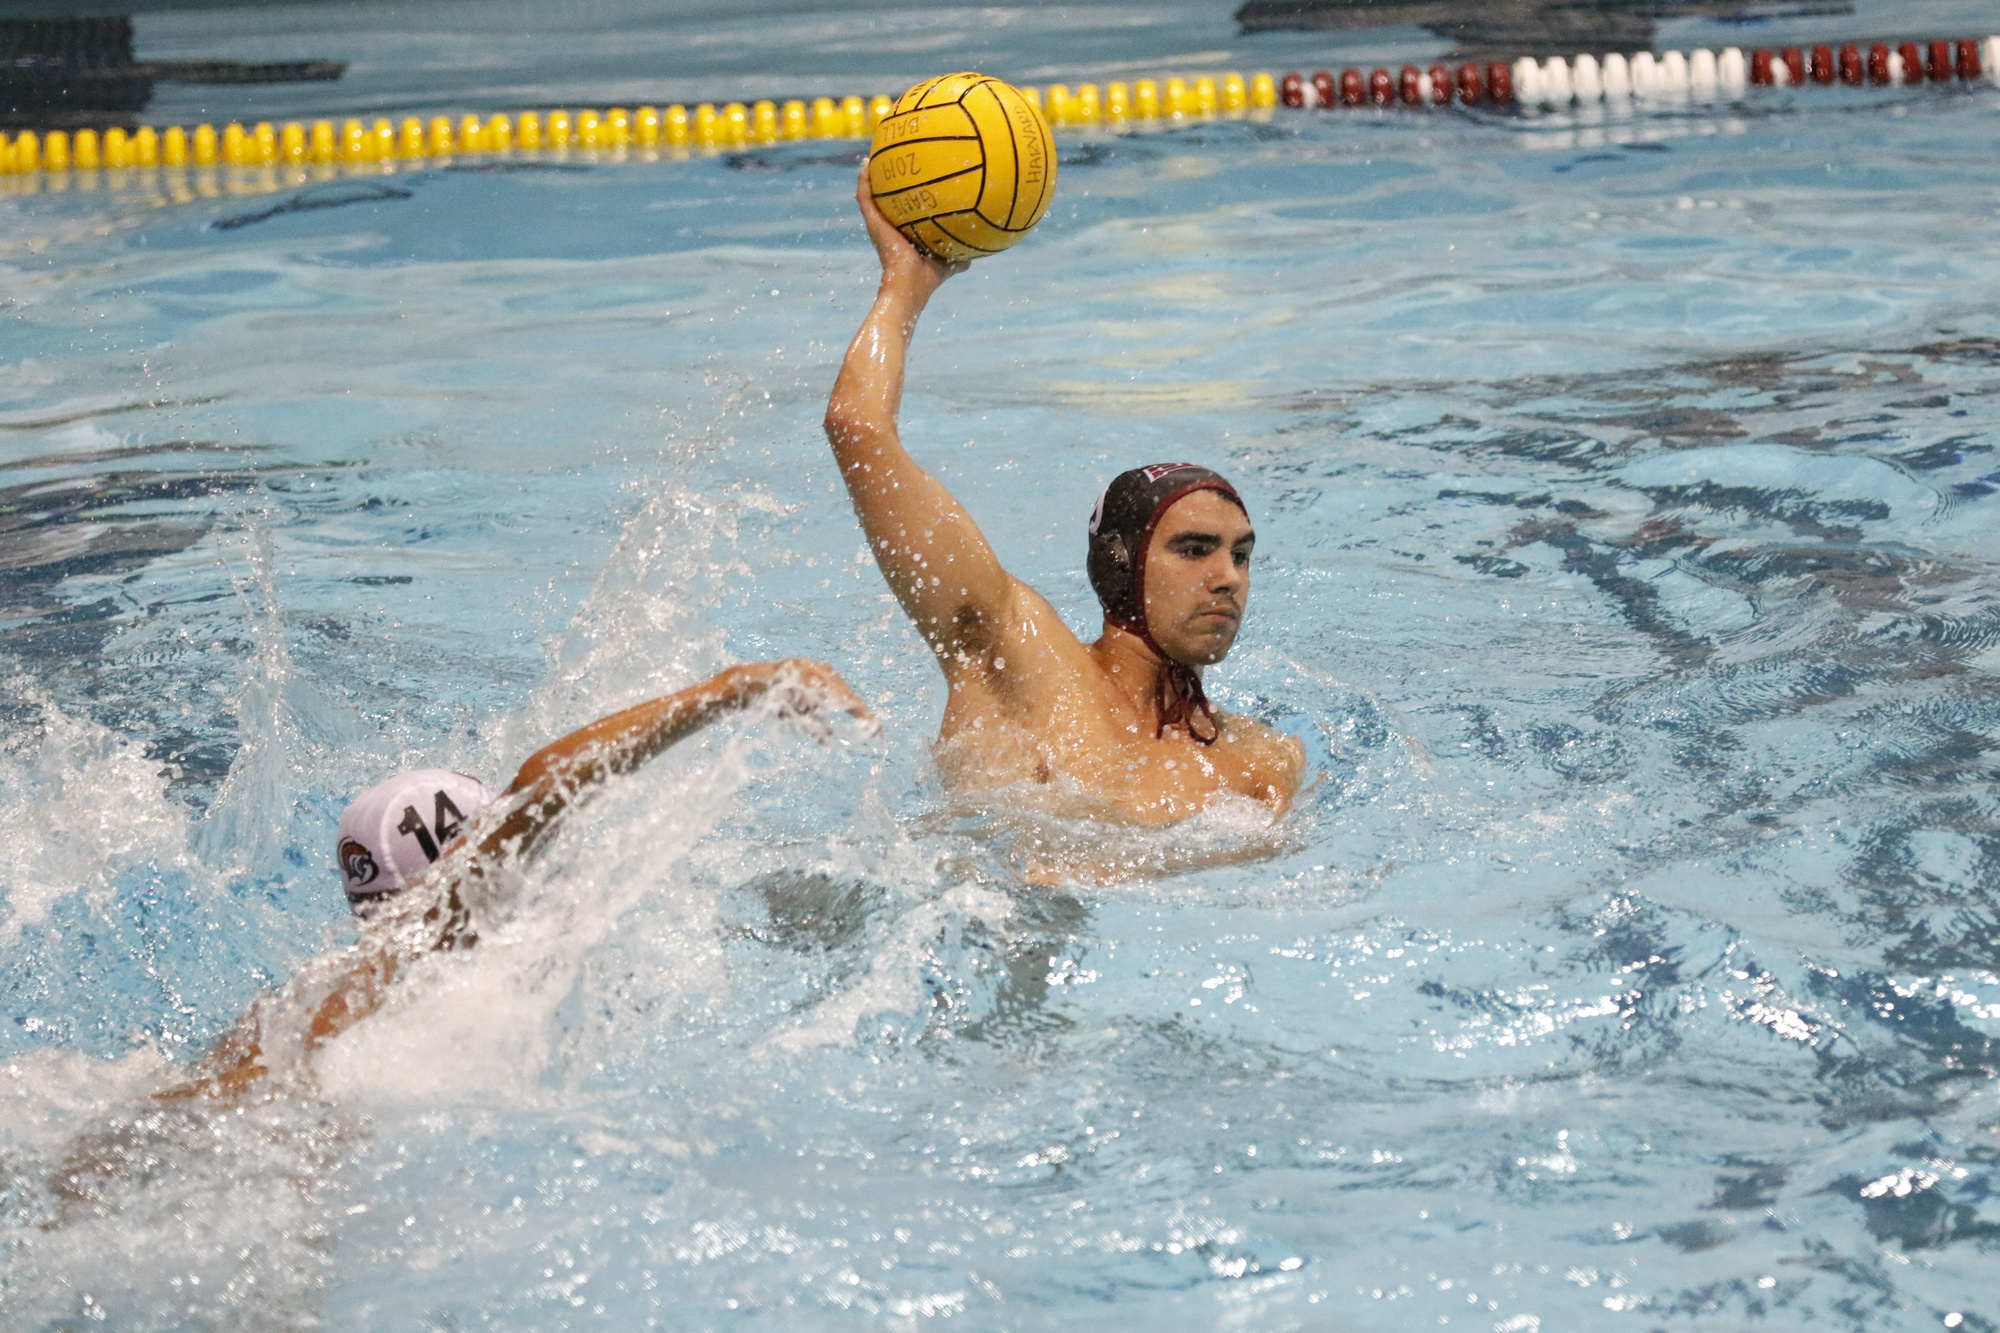 Harvard went 3-0 in its own invite this weekend, downing No. 18 Wagner, No. 15 Bucknell and Claremont-Mudd-Scripps.